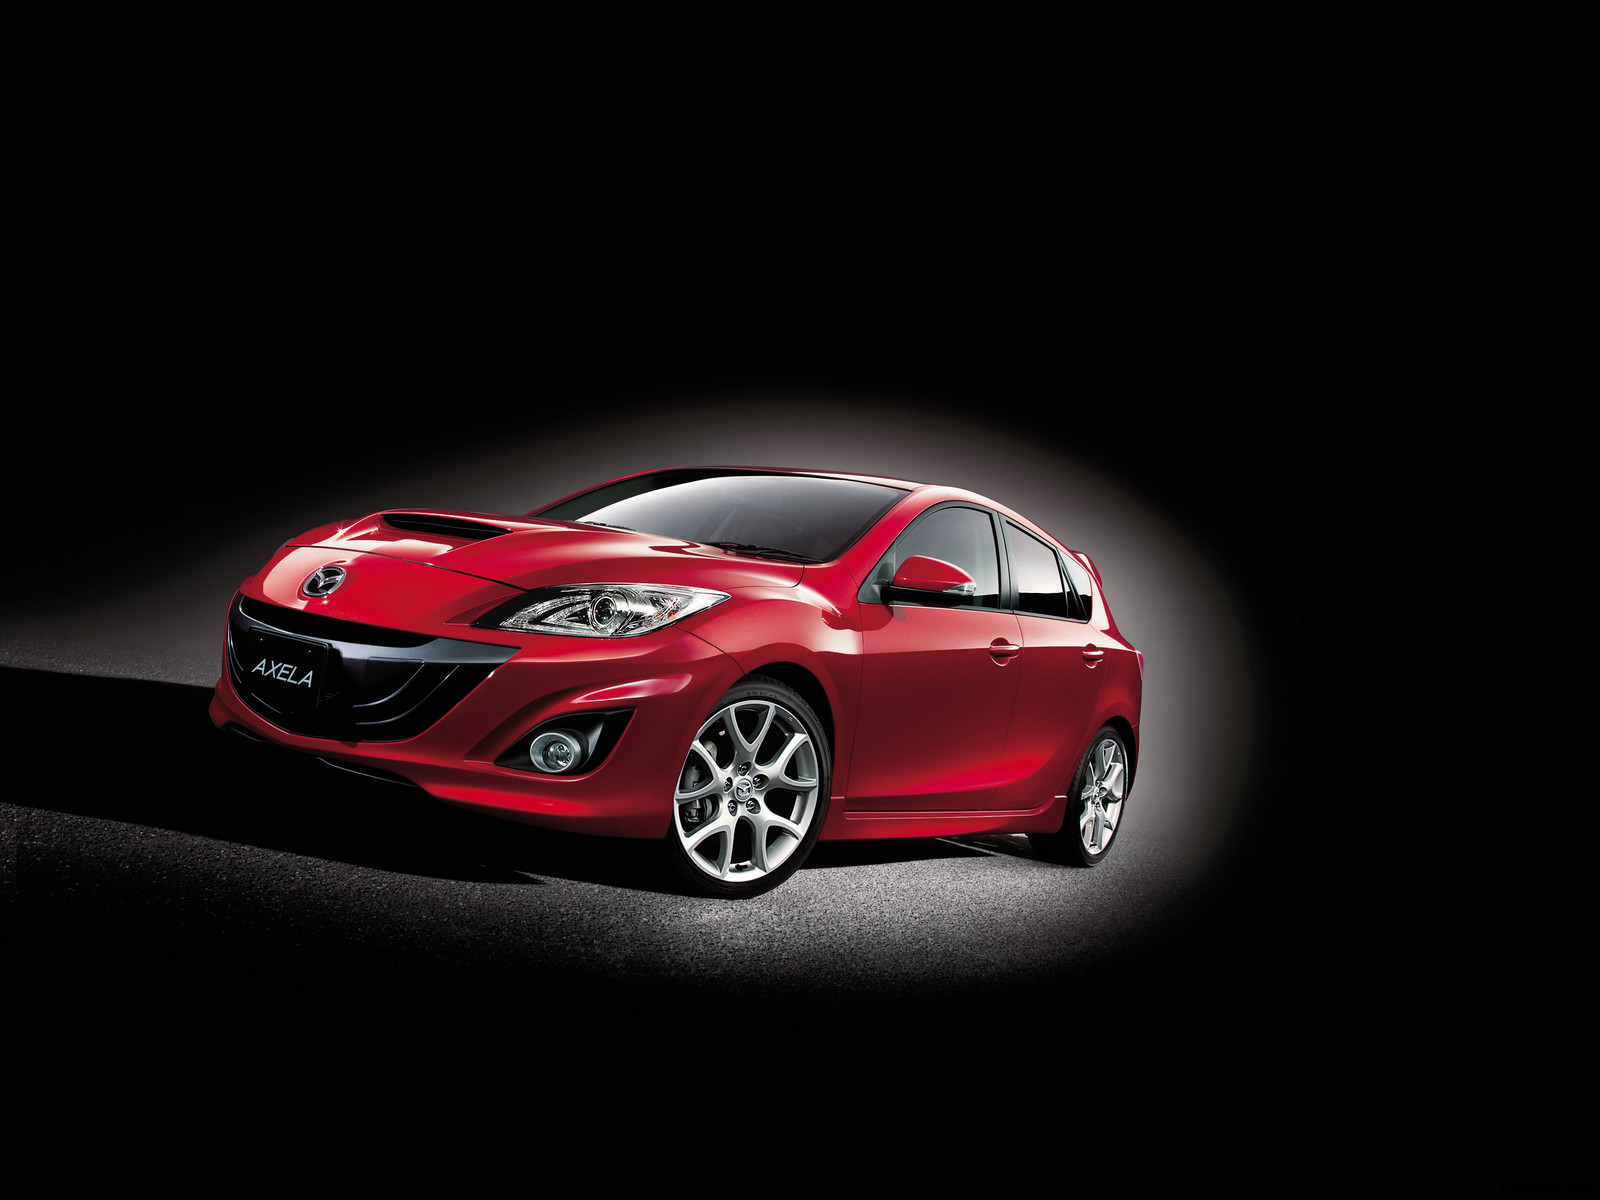 2012 Mazda MazdaSpeed 3   Front Wallpaper 2 1600x1200